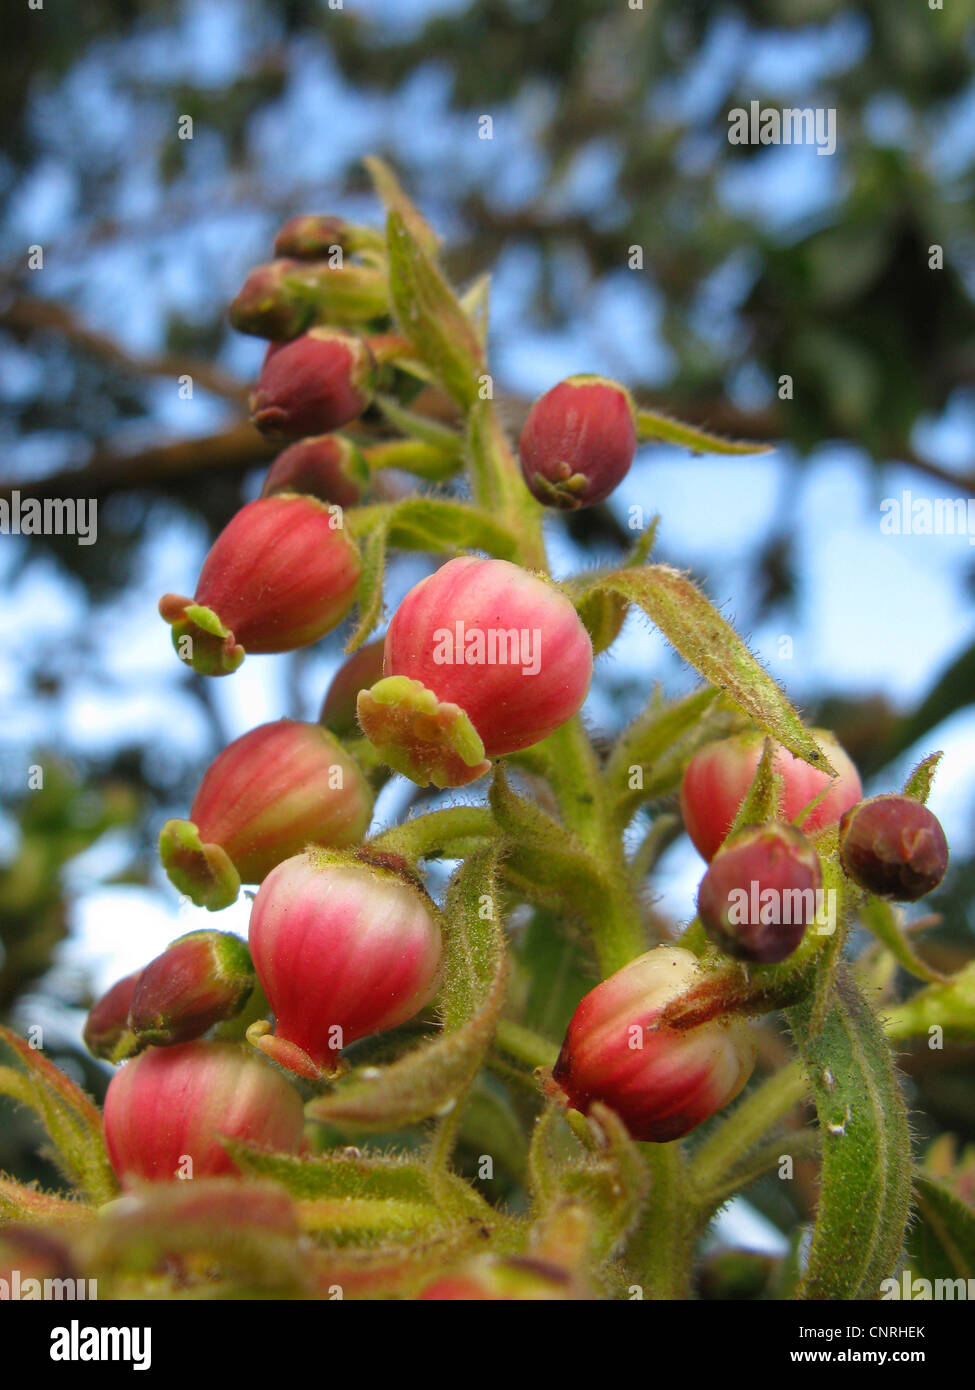 strawberry tree stock photos  strawberry tree stock images  alamy, Beautiful flower